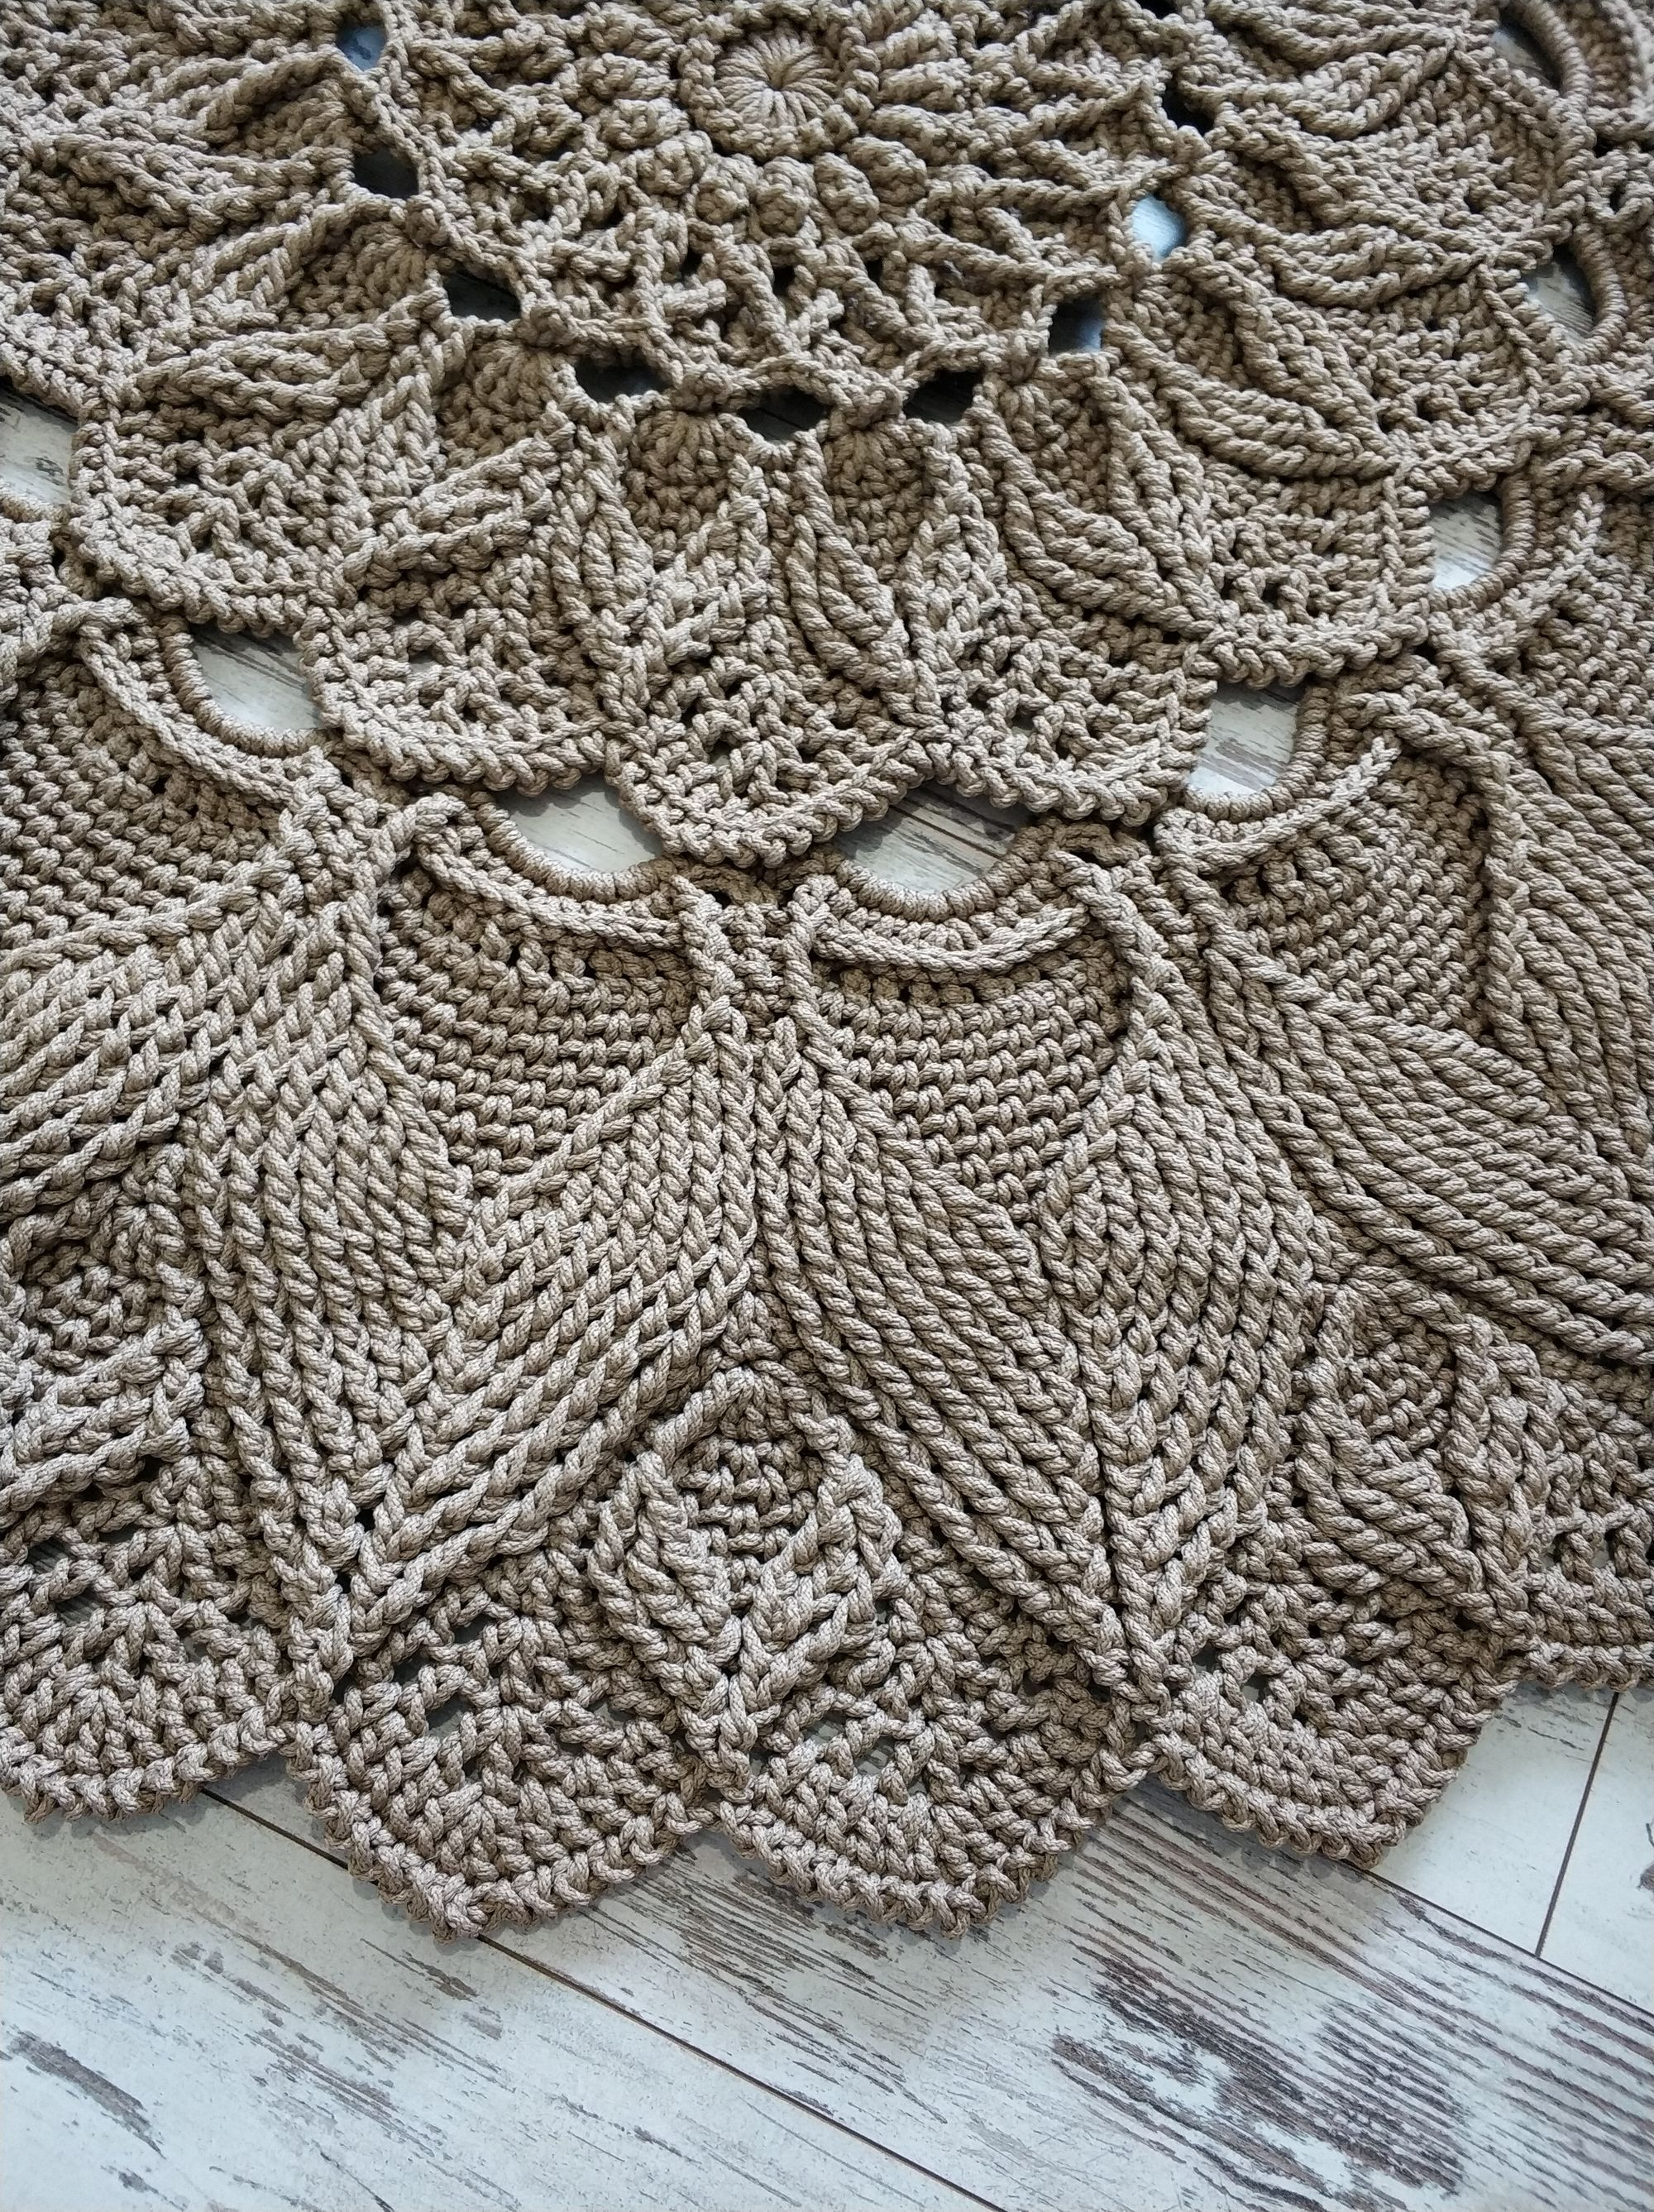 Video Tutorial Crocheting Rug Elven Patterns Text Description In English Video In Russian In 2020 Crochet Rug Patterns Crochet Rug Rug Pattern